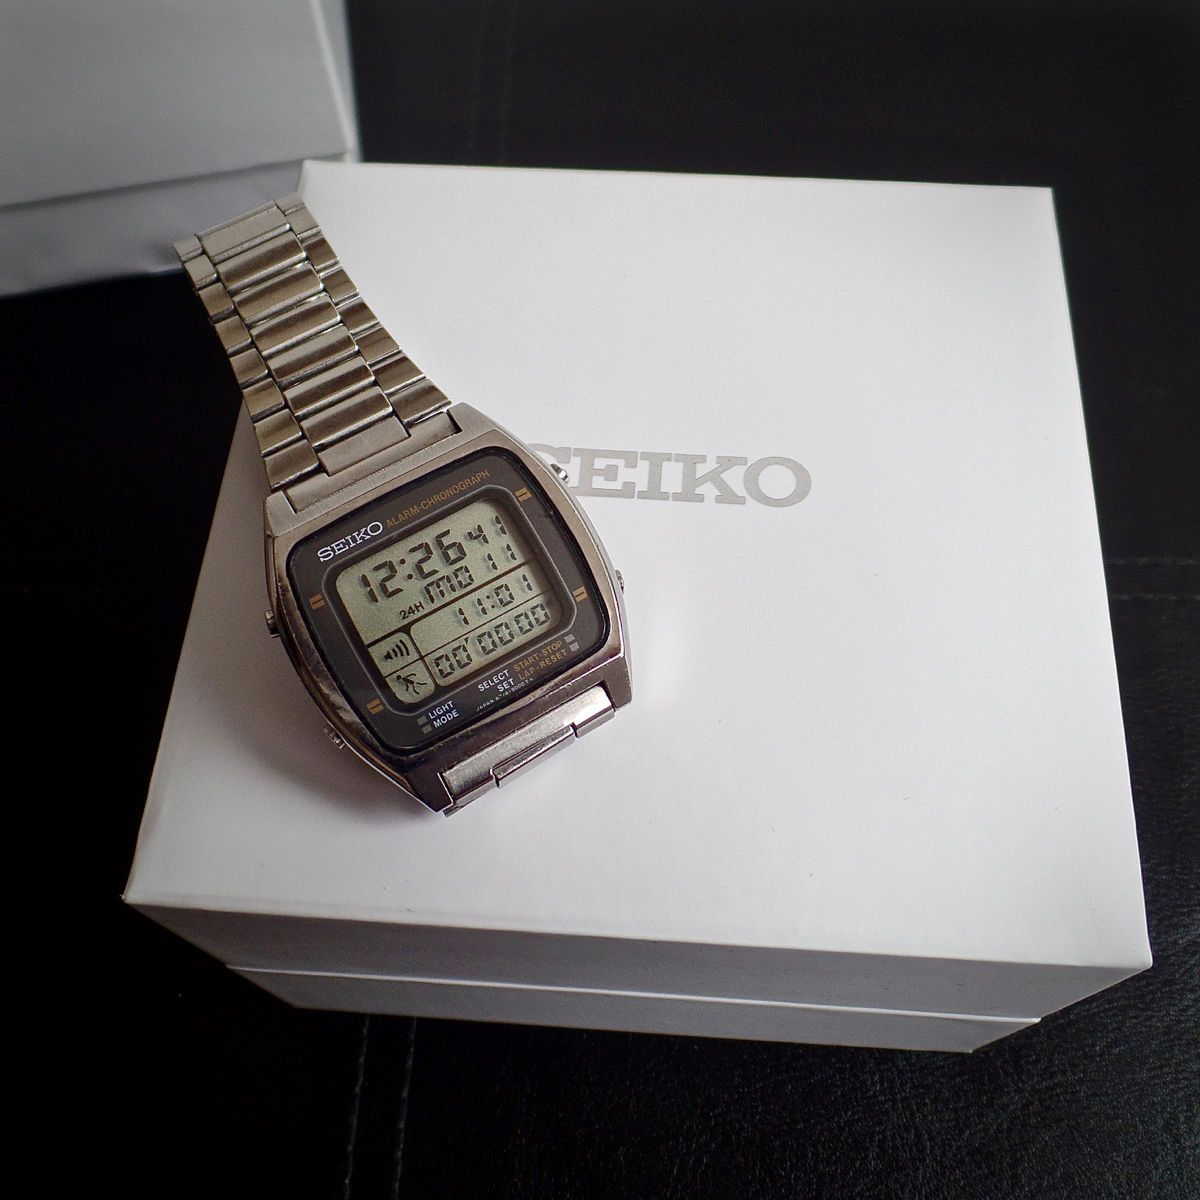 2ff27cc42e391 SEIKO A714-5009 Vintage 1983 LCD RUNNING MAN Watch   Box WORKING All  Original in Jewellery   Watches, Watches, Wristwatches   eBay